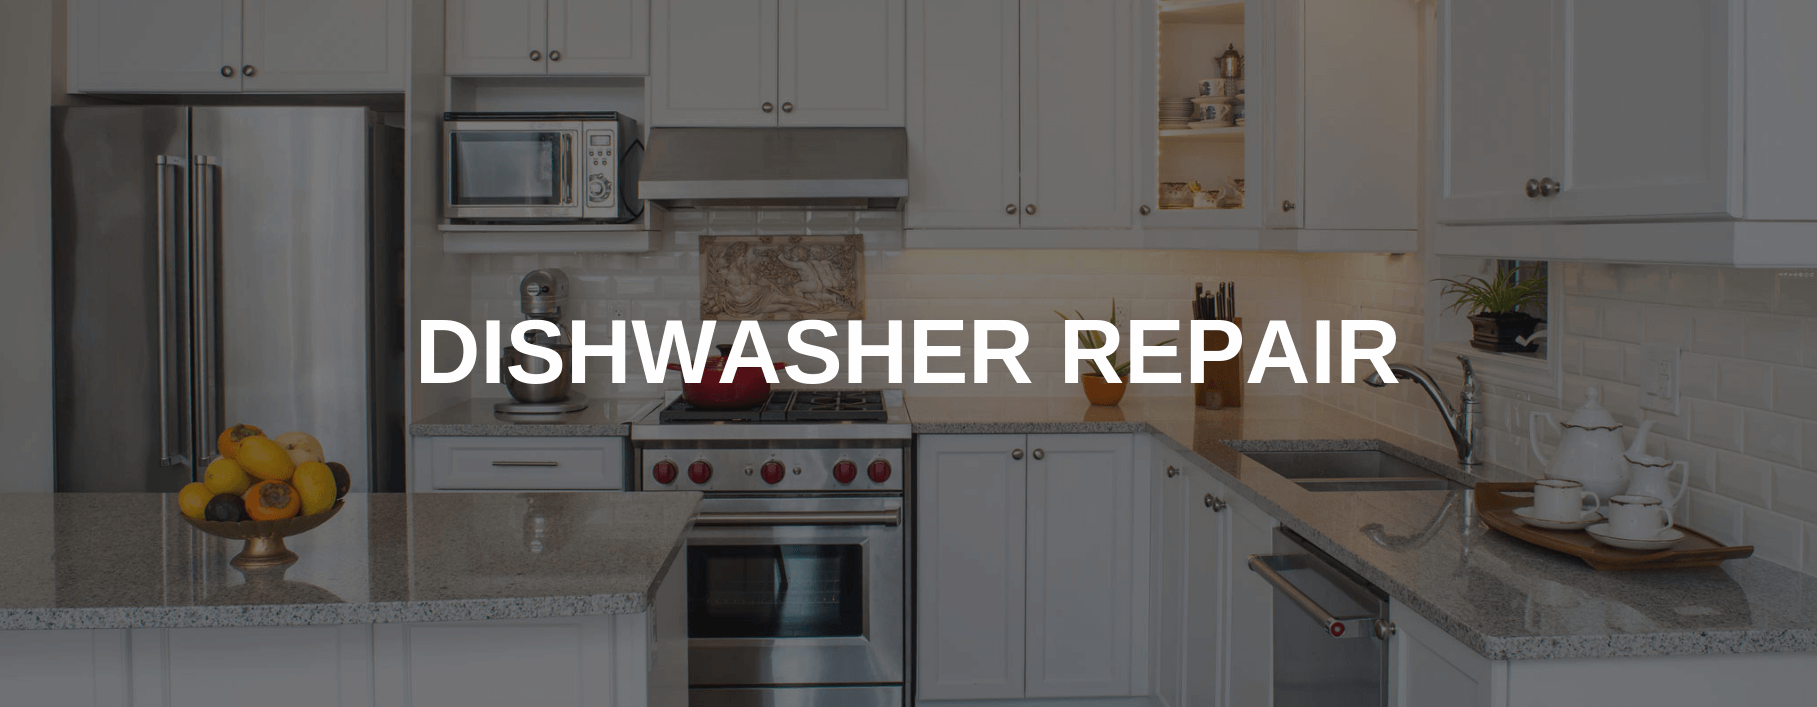 dishwasher repair escondido